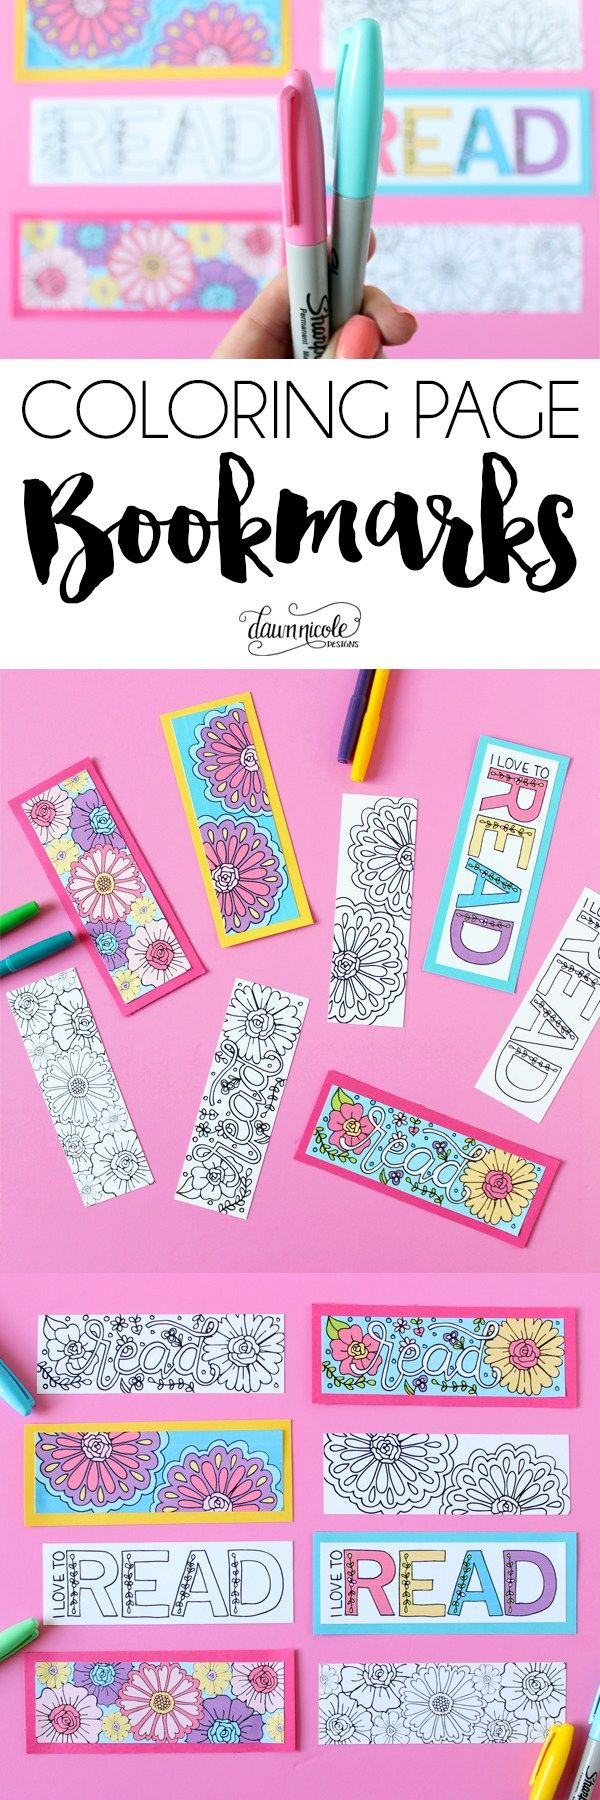 Summer Coloring Page Bookmarks | Bookmarks, Free printables and Dawn ...